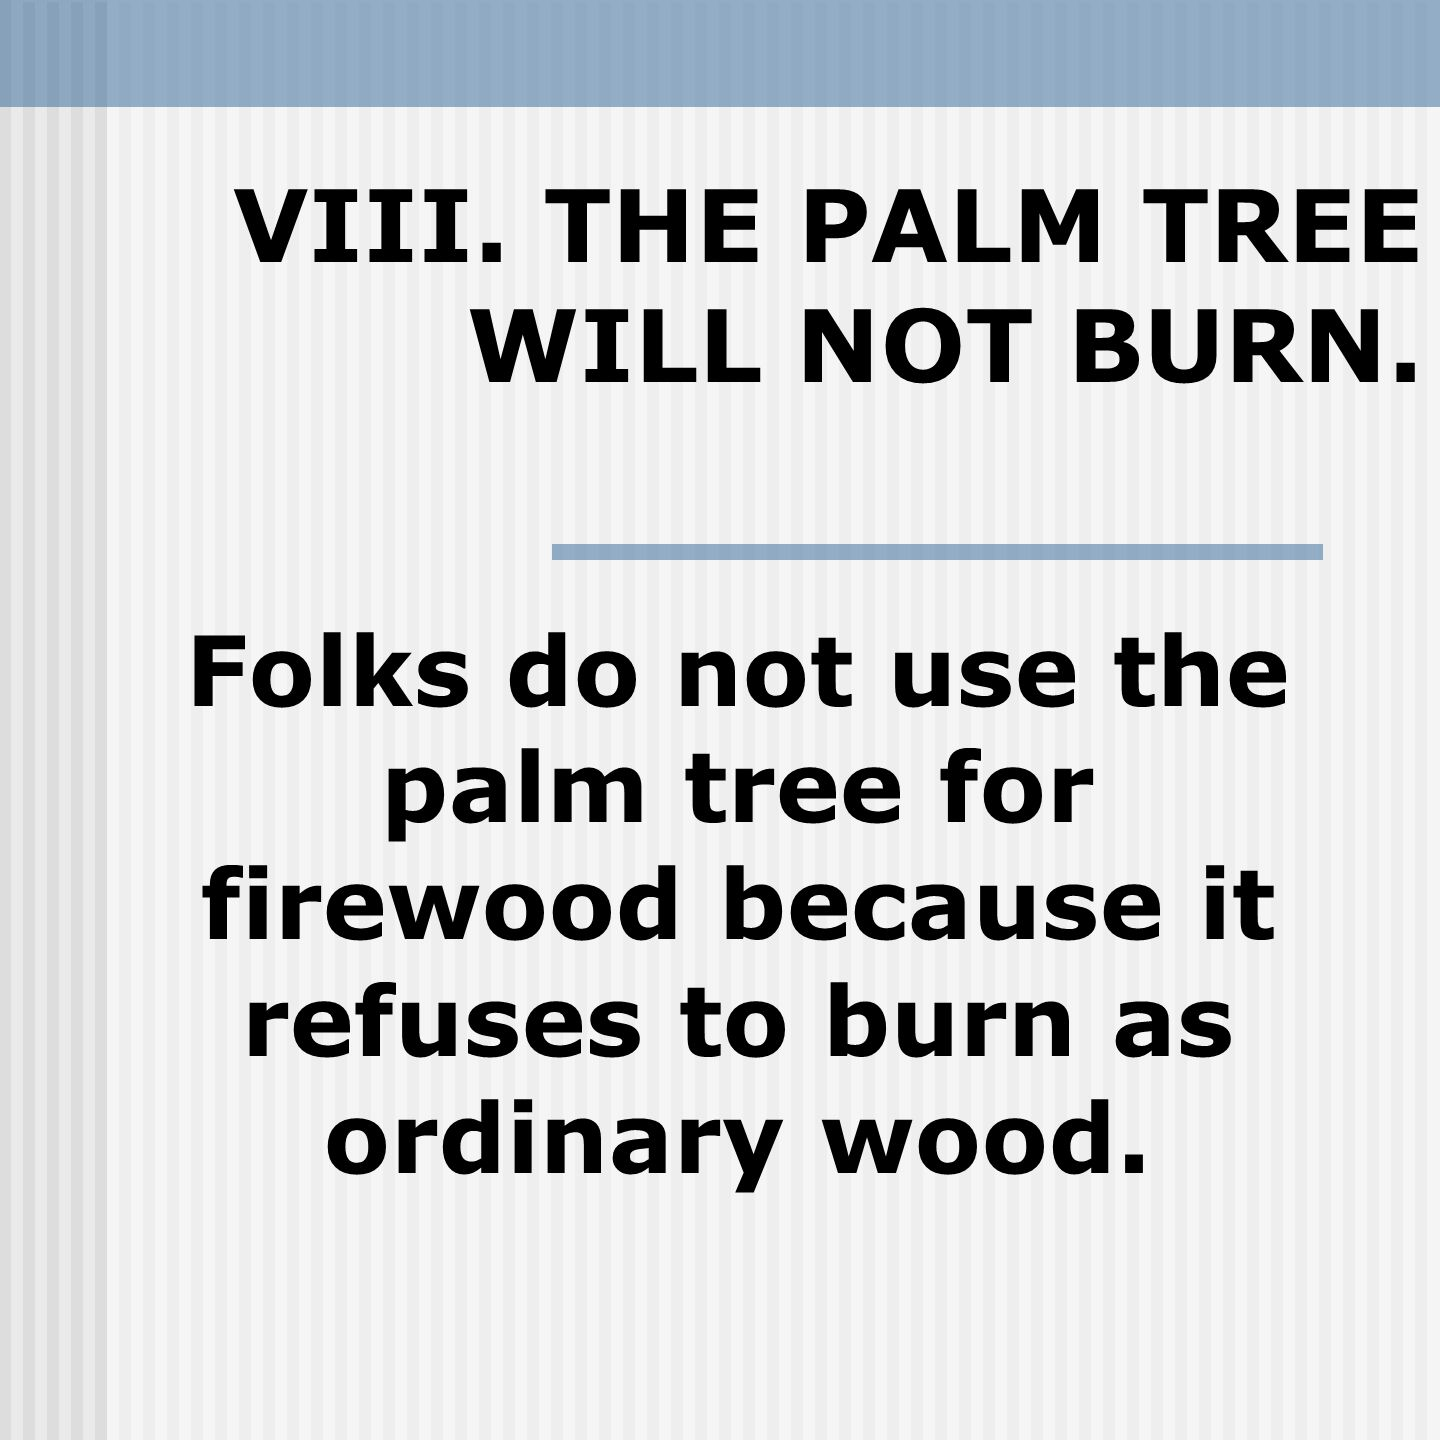 VIII. THE PALM TREE WILL NOT BURN. Folks do not use the palm tree for firewood because it refuses to burn as ordinary wood.